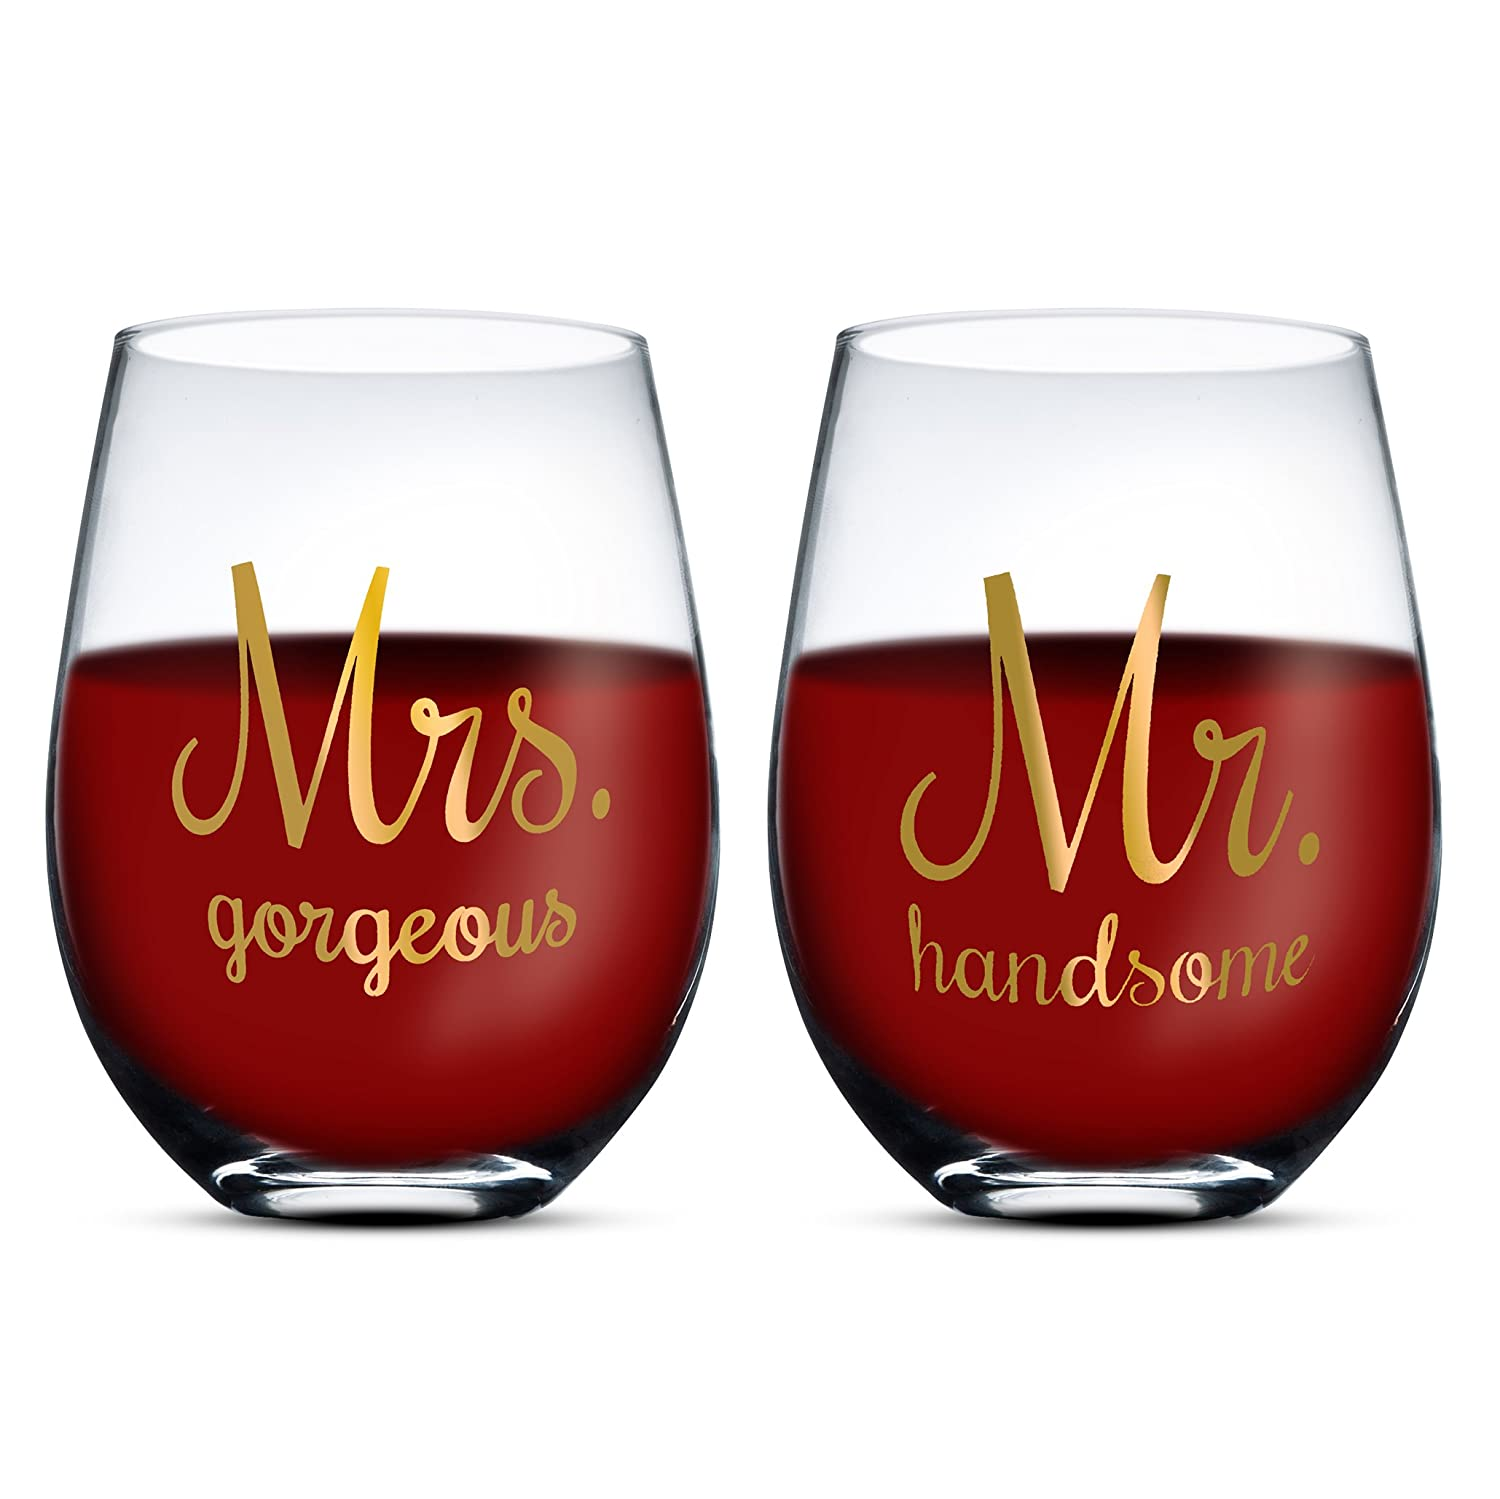 Gifffted Mr Handsome Et Mrs Gorgeous Verre à Vin, Cadeau Mariage, Couples, Femme, Fiançailles, Anniversaire, Saint Valentin, Parents, Noël, Mug 380 ML HS wine glasses for couples